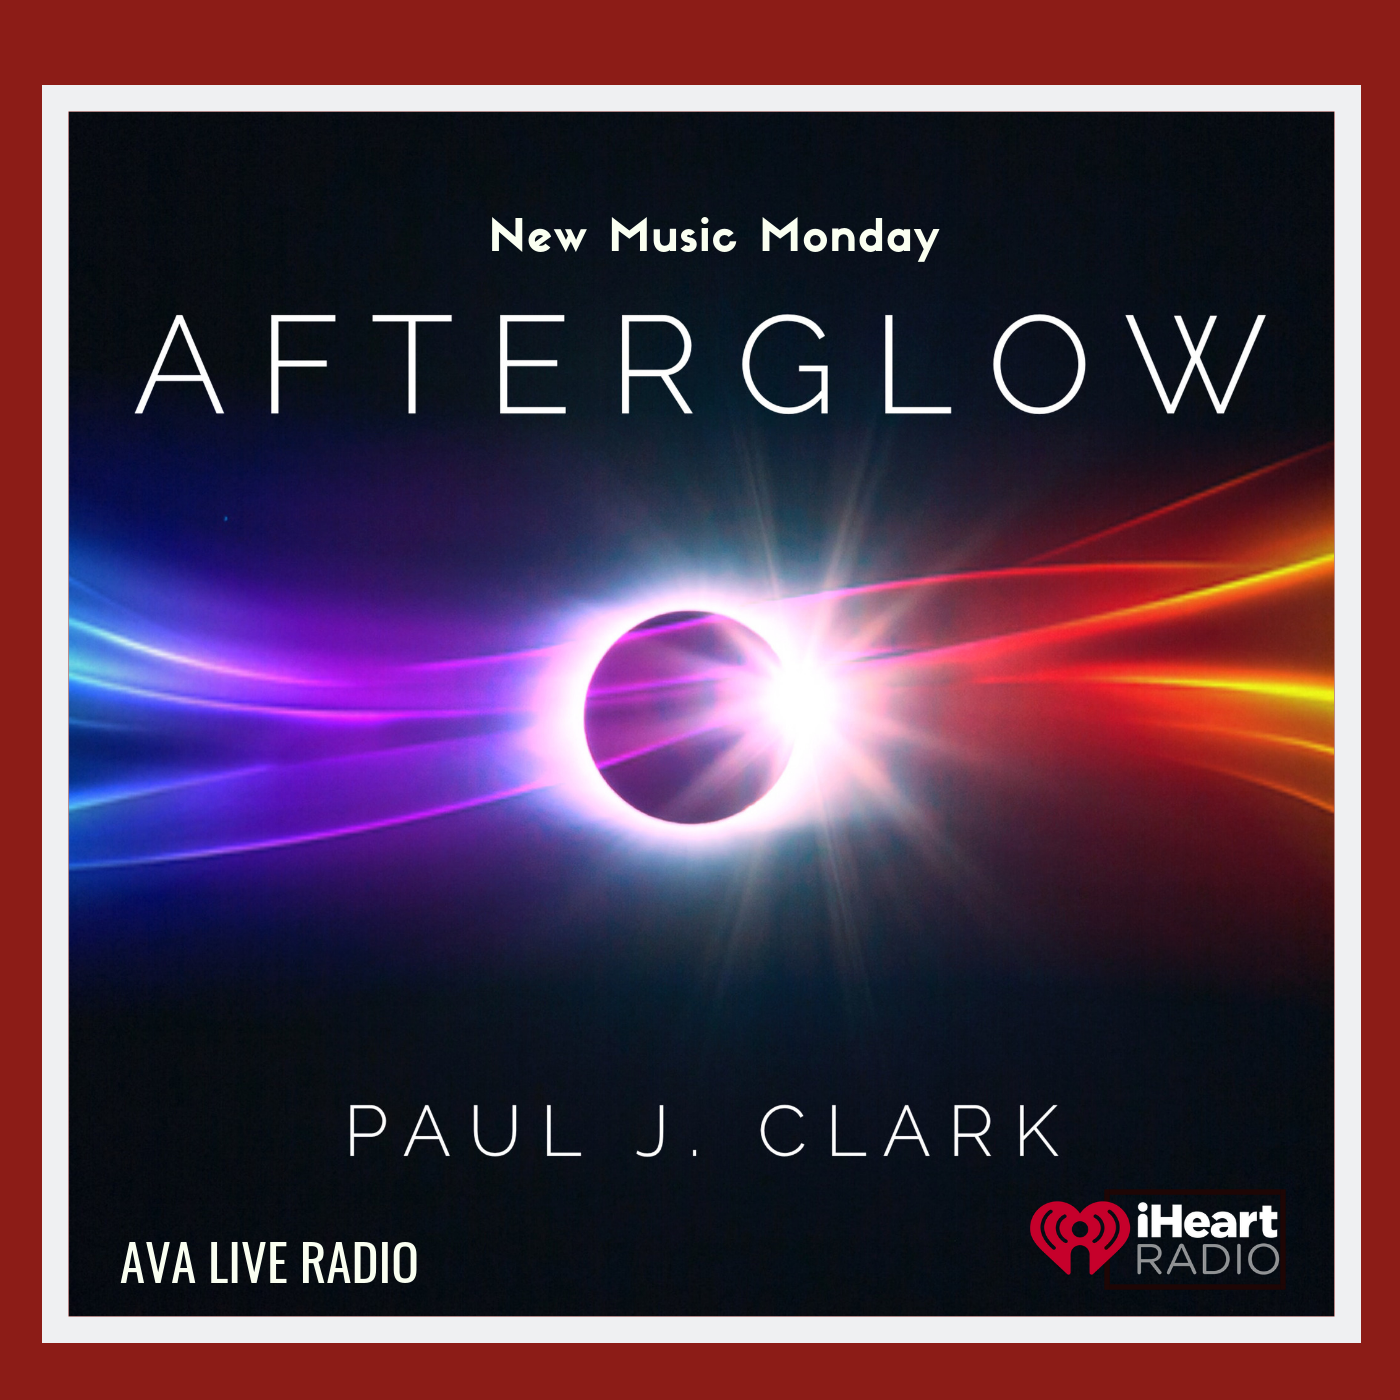 Paul j clark afterglow avaliveradio.png